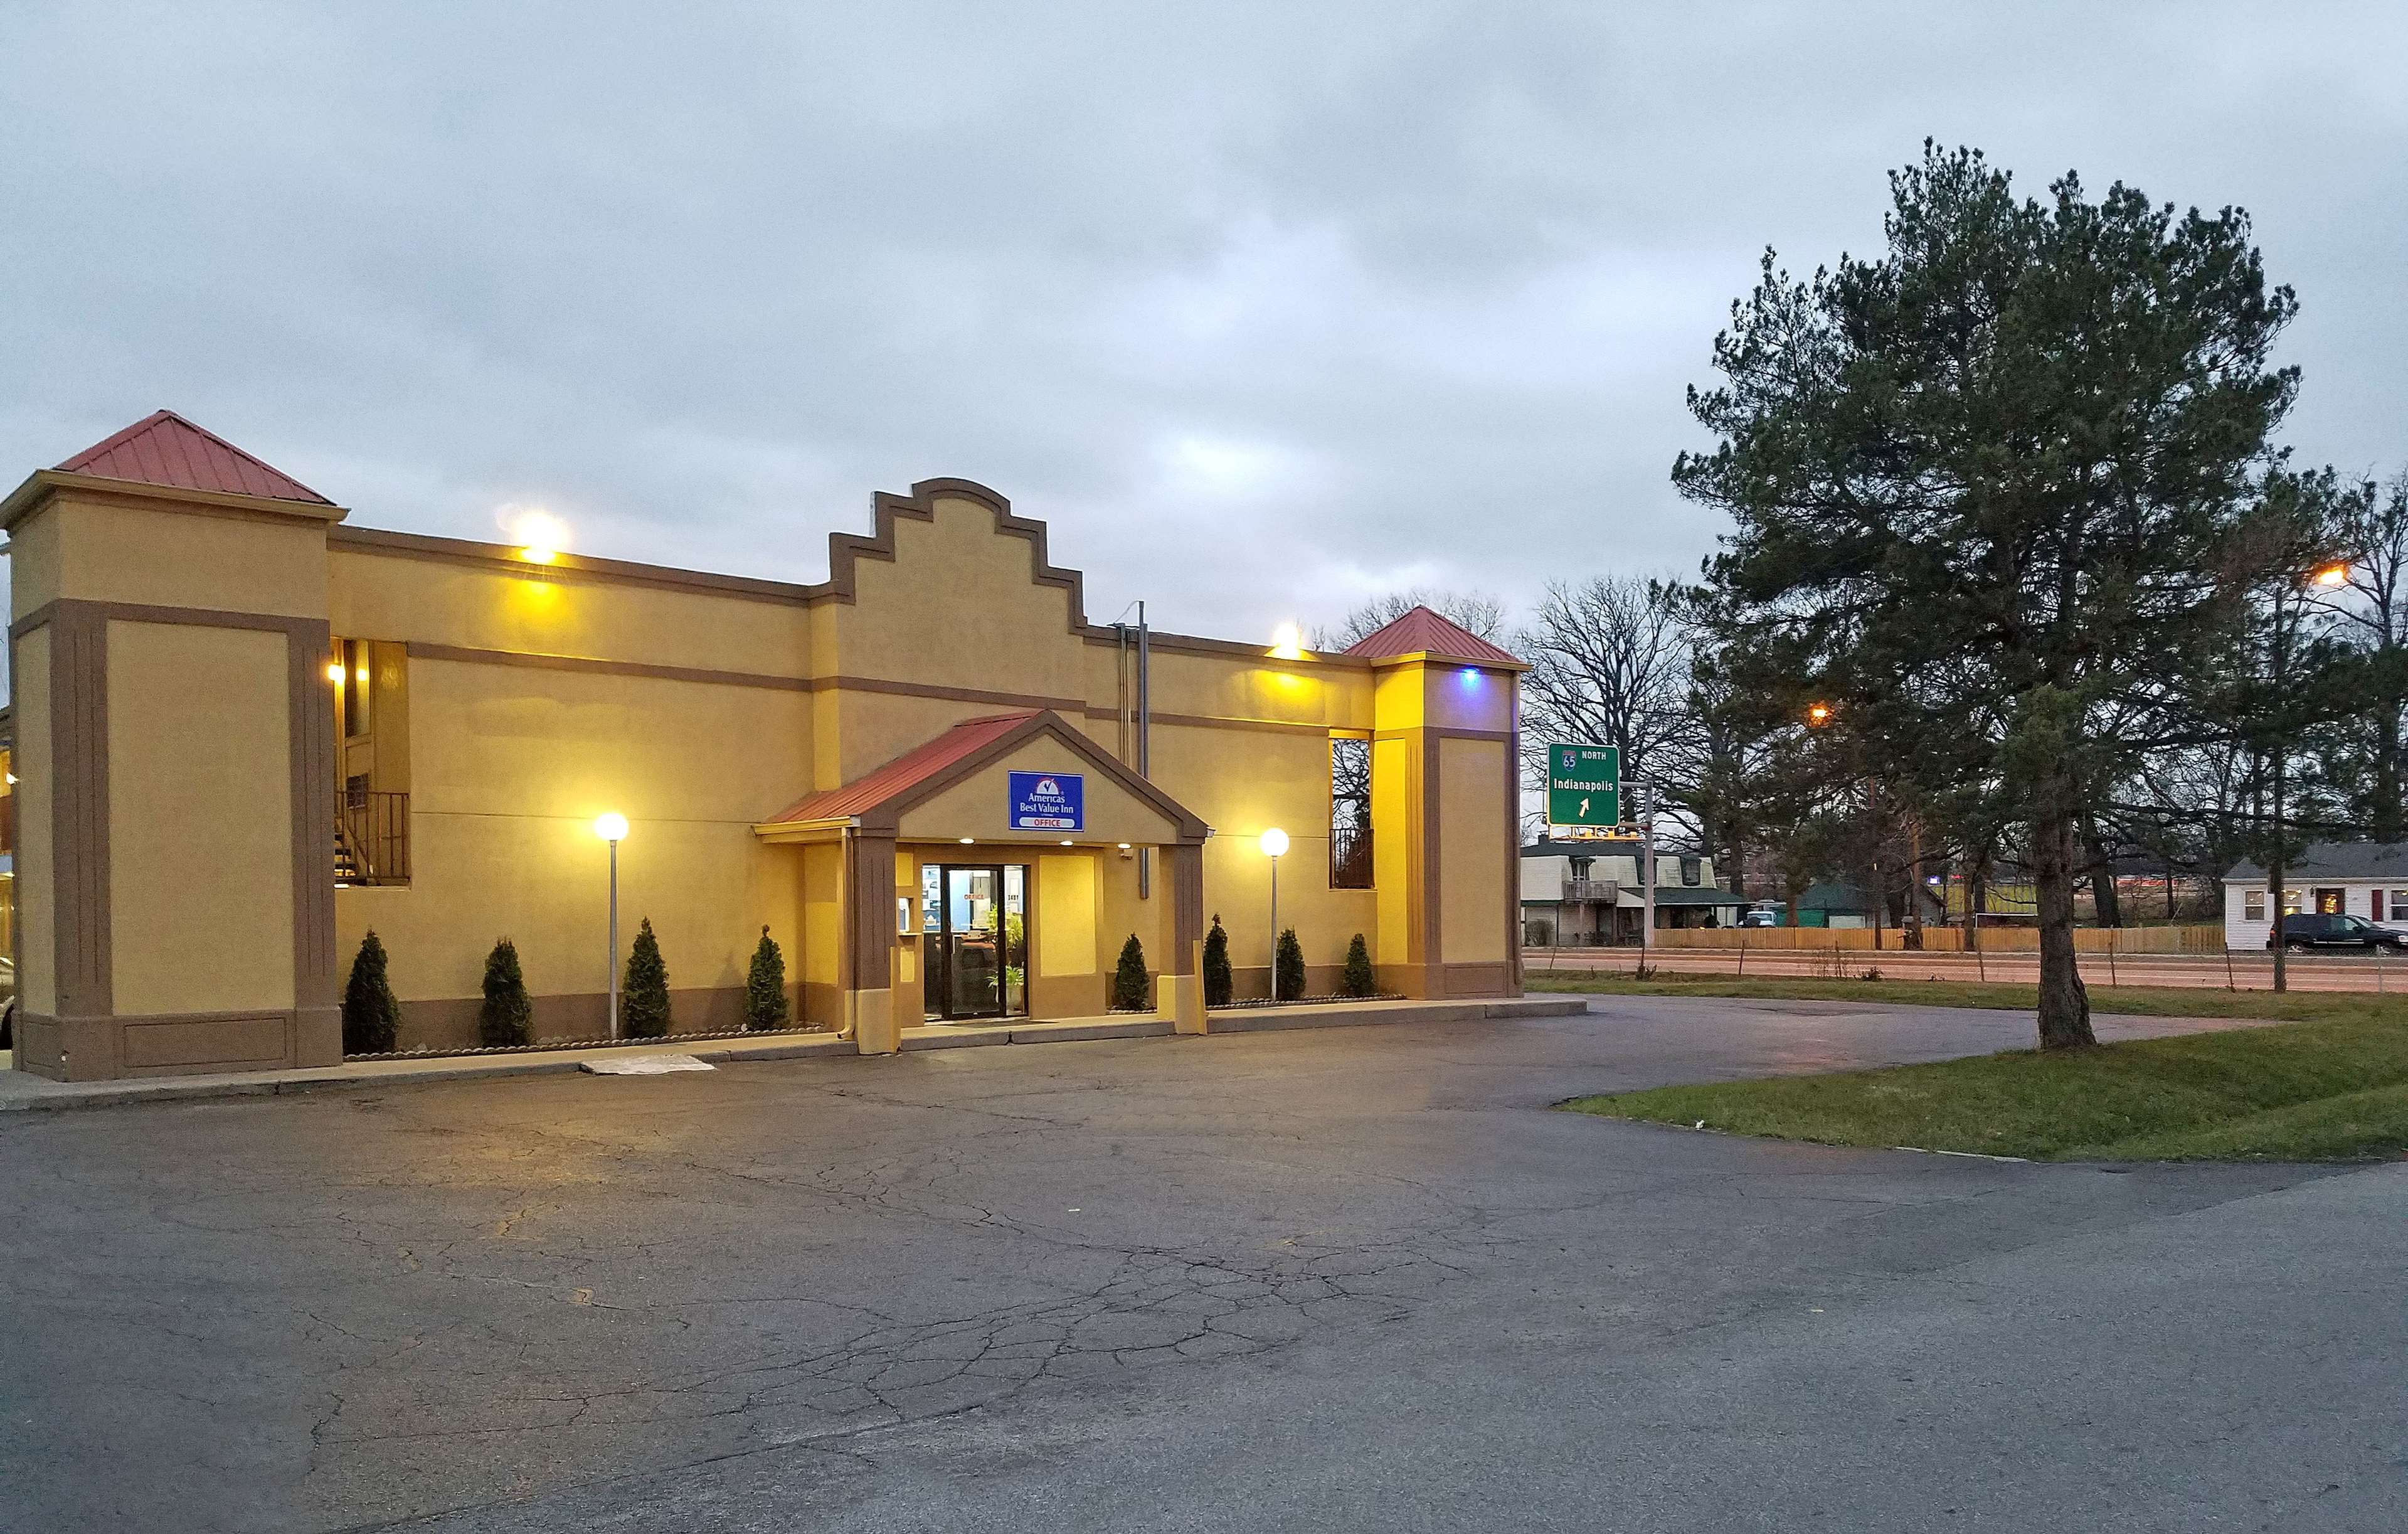 Americas Best Value Inn - Indy South image 0